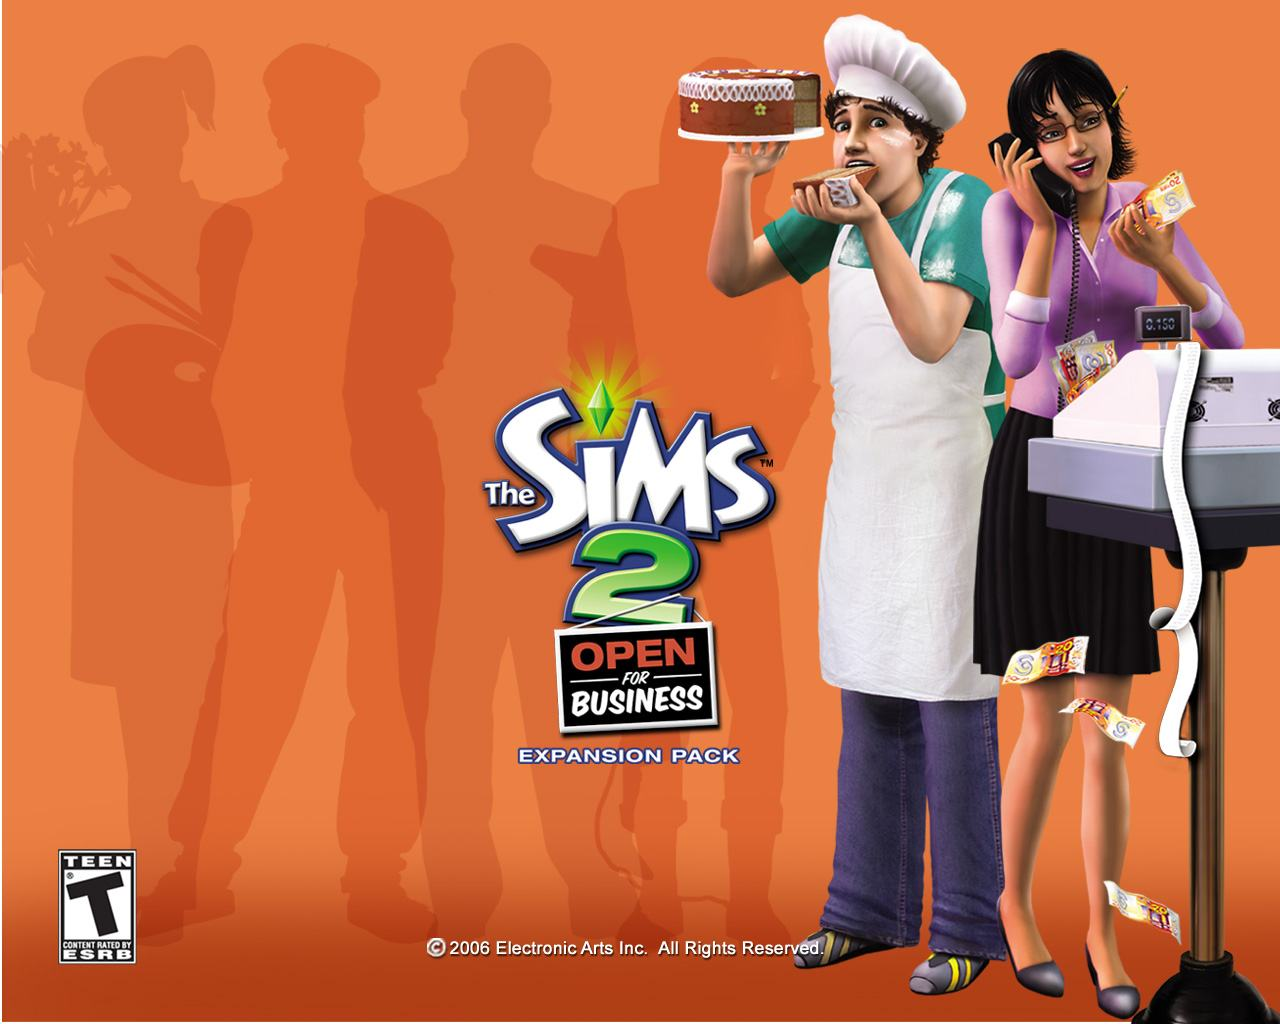 Обои Sims 2: Open for Business 1280x1024